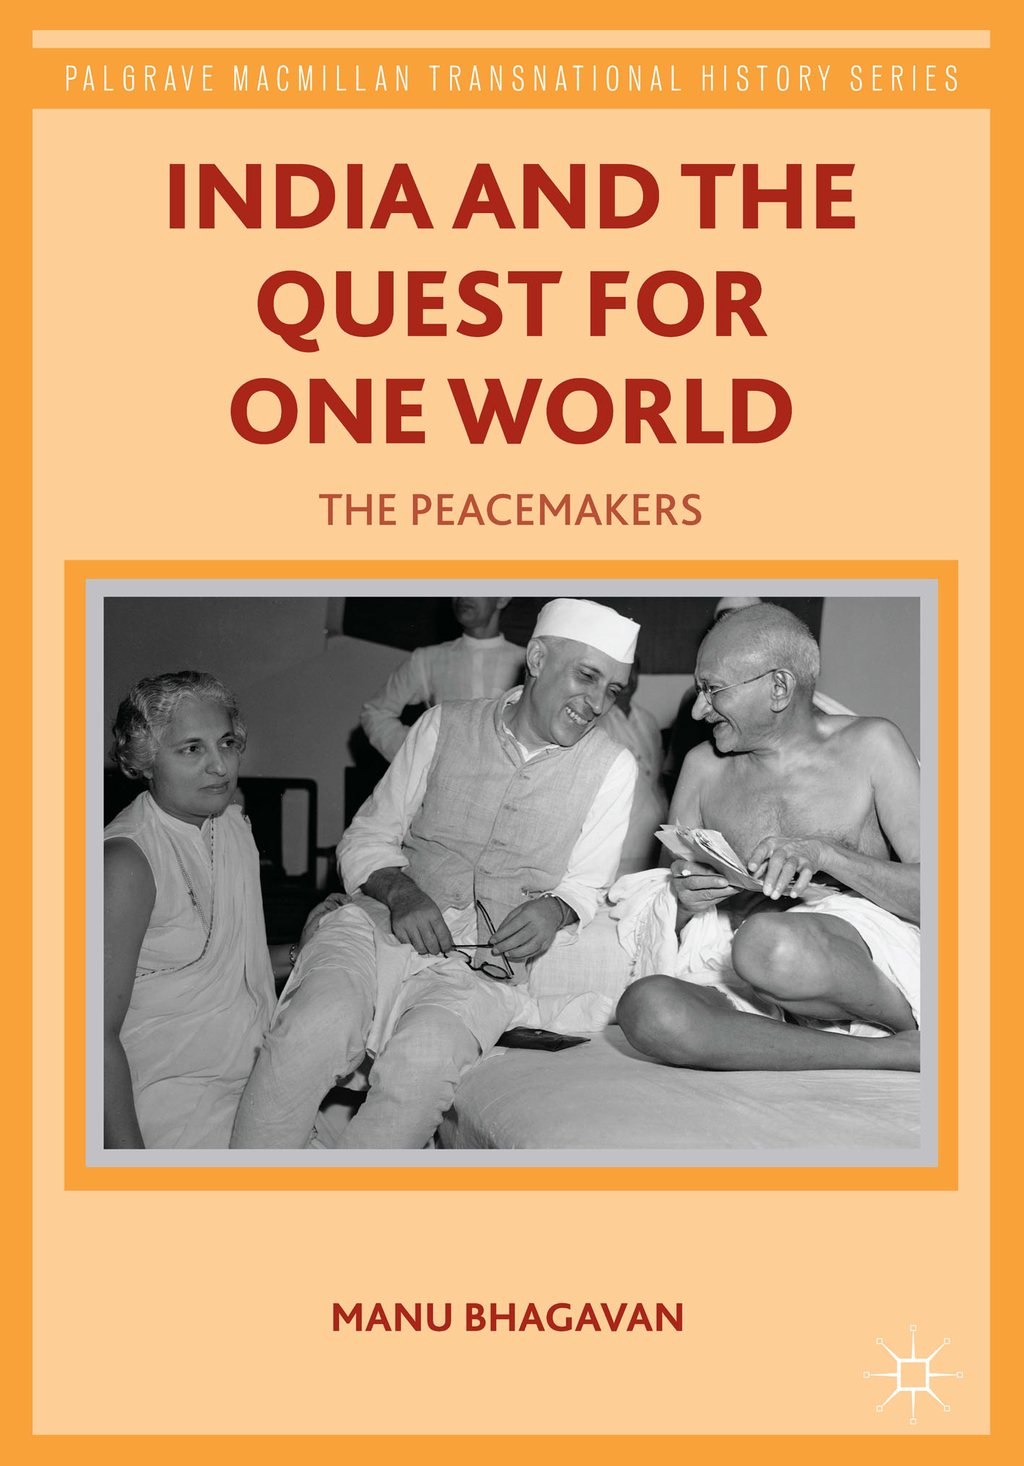 India and the Quest for One World The Peacemakers